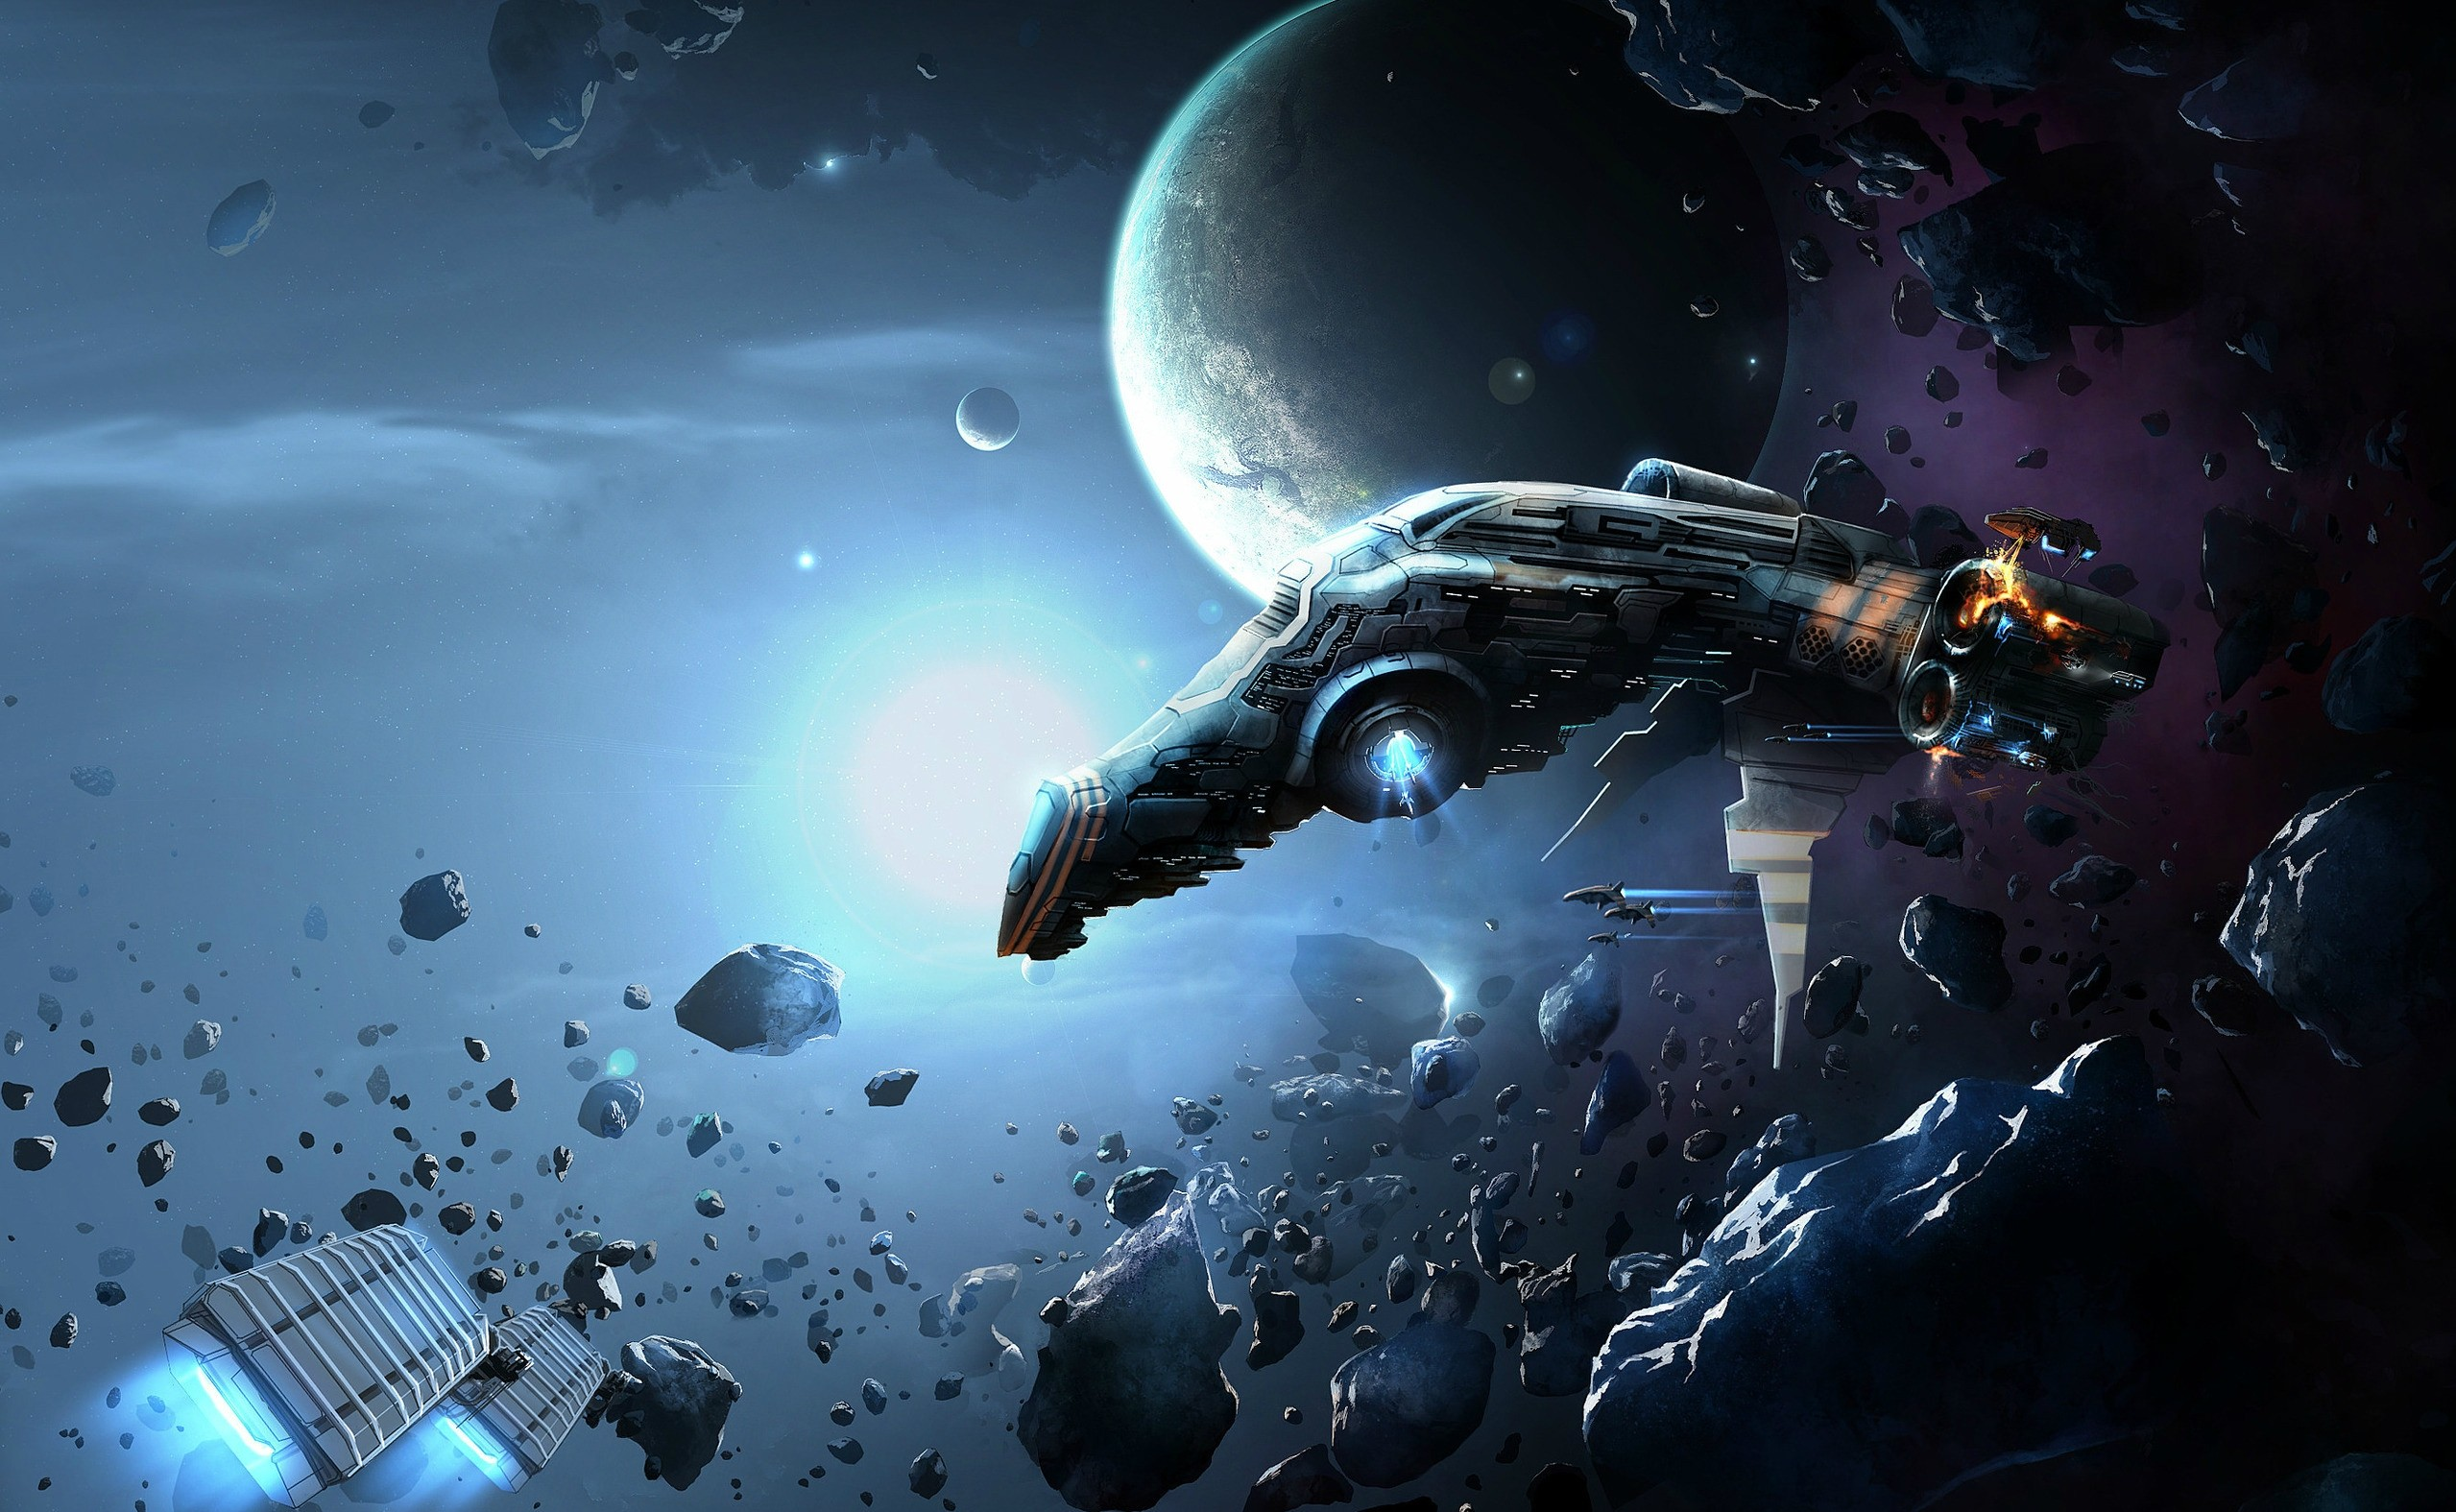 Eve Online Wallpaper ① Download Free Amazing Hd Wallpapers For